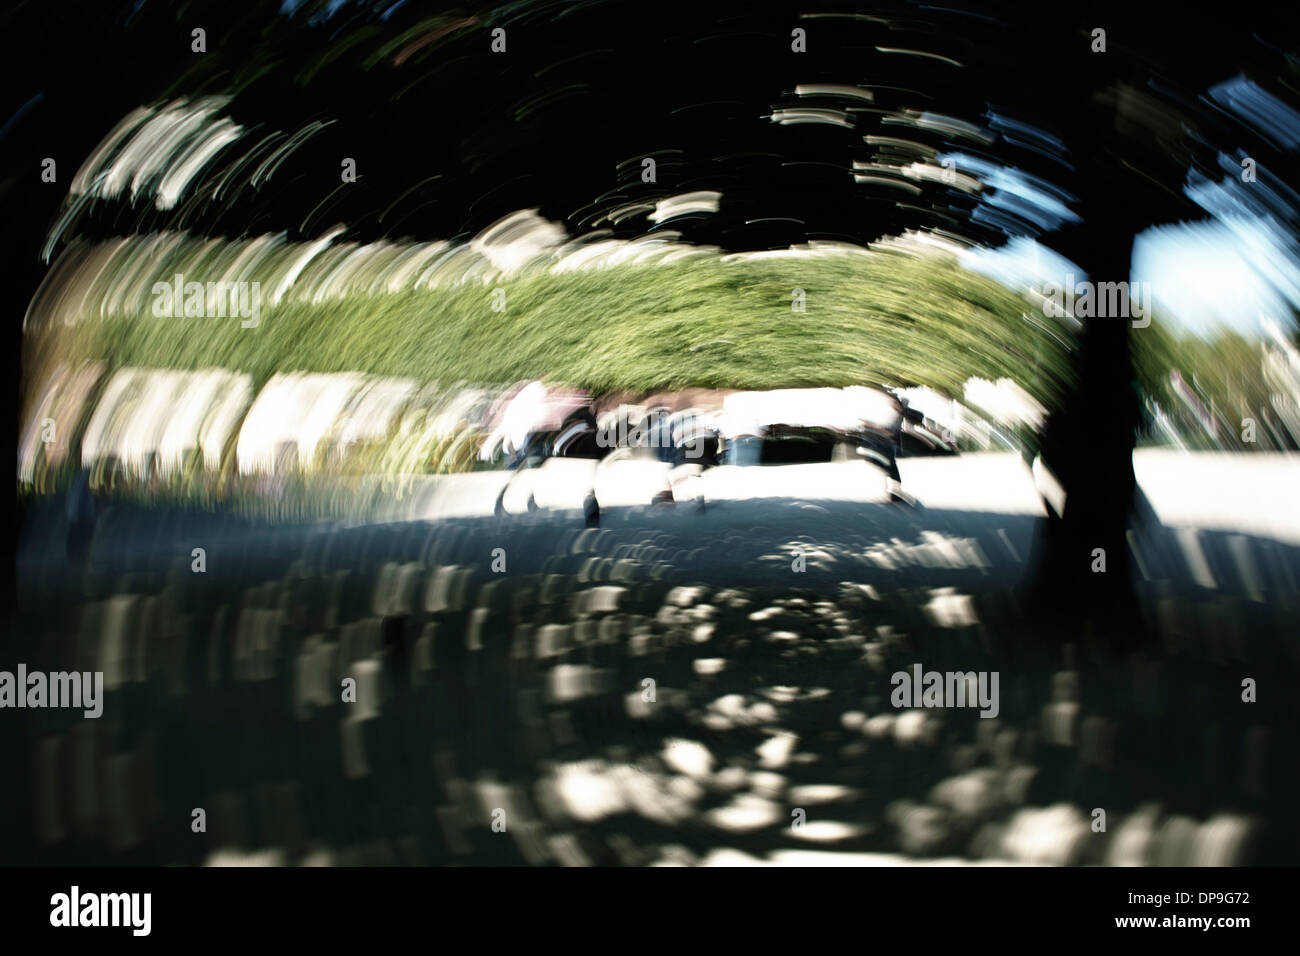 Moving whirl image of Paris park - Stock Image